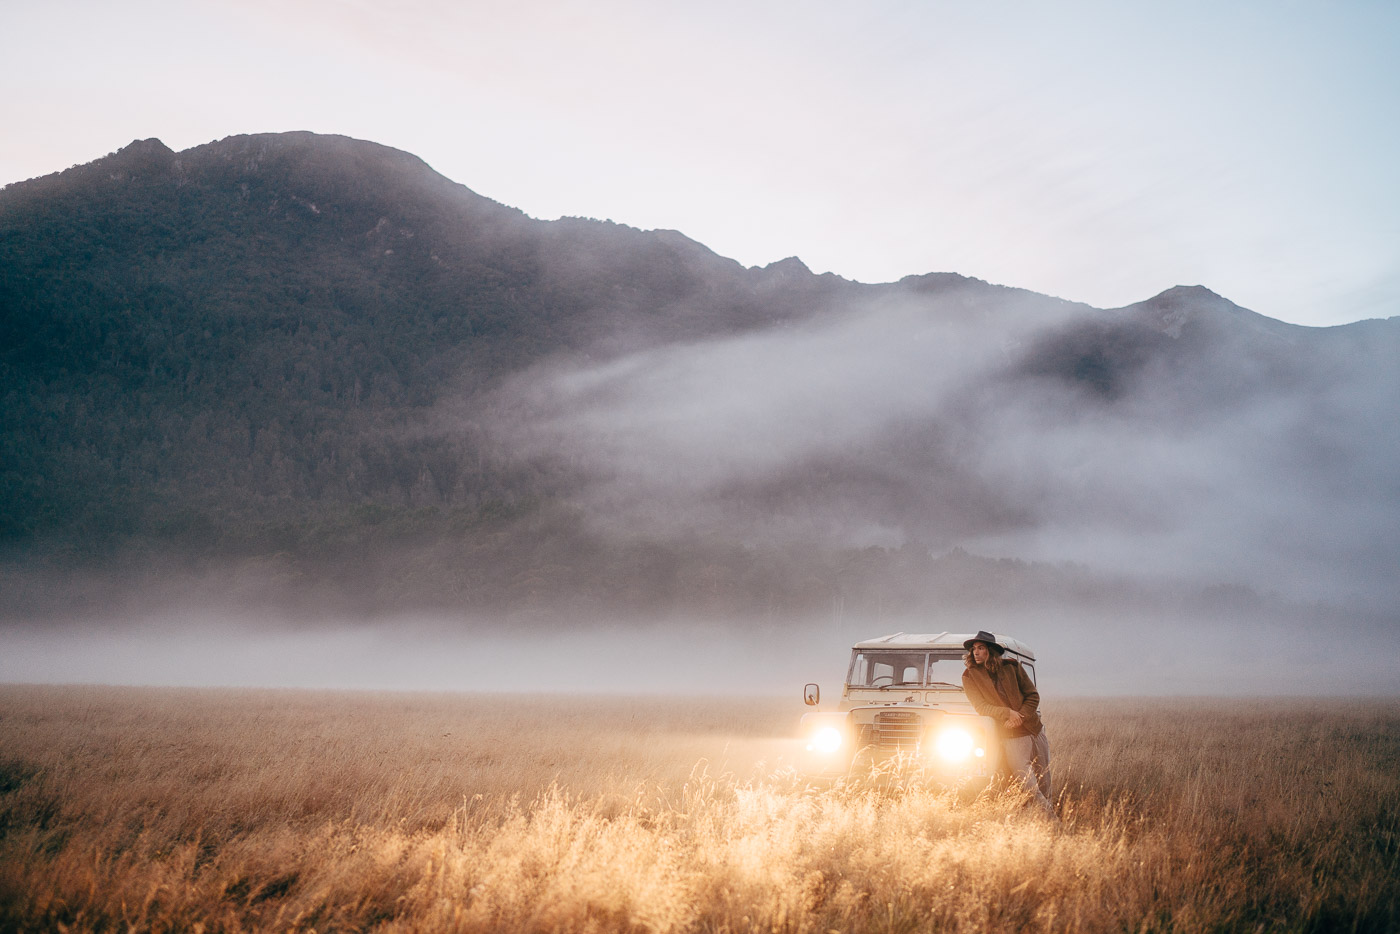 Land Rover in a grass field in the fod of Fiordland, New Zealand